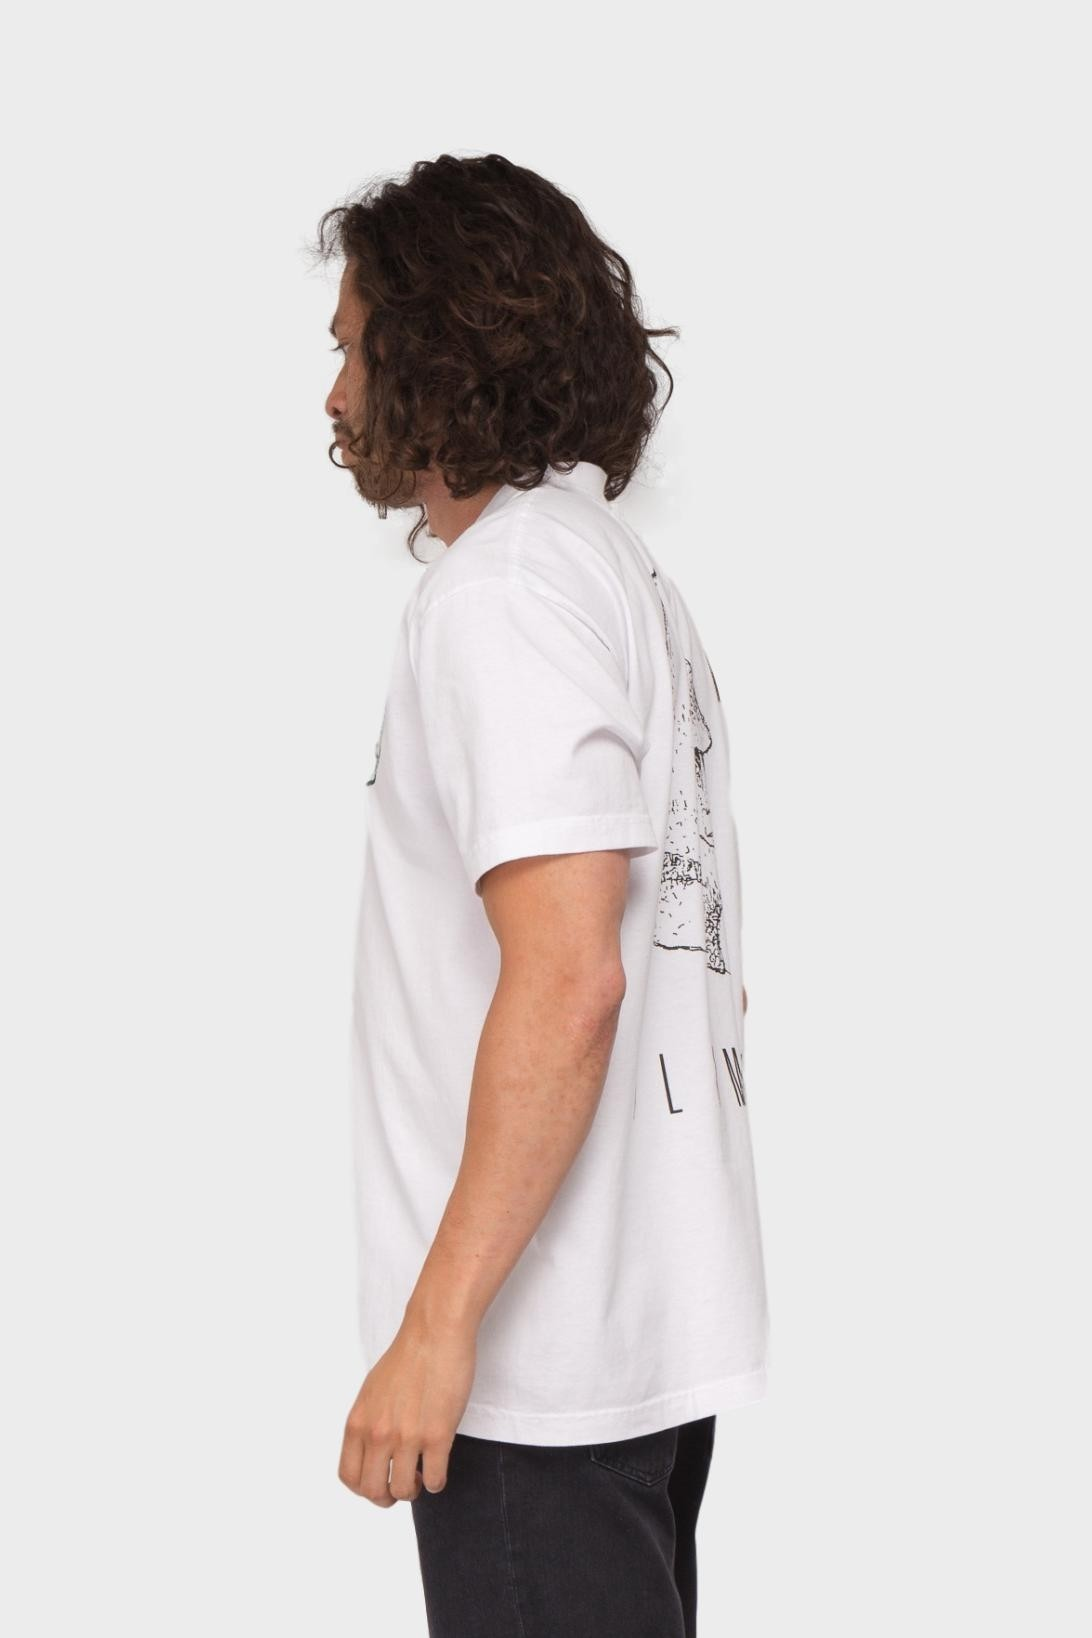 Mister Green High Climb Tee in White Forest Green